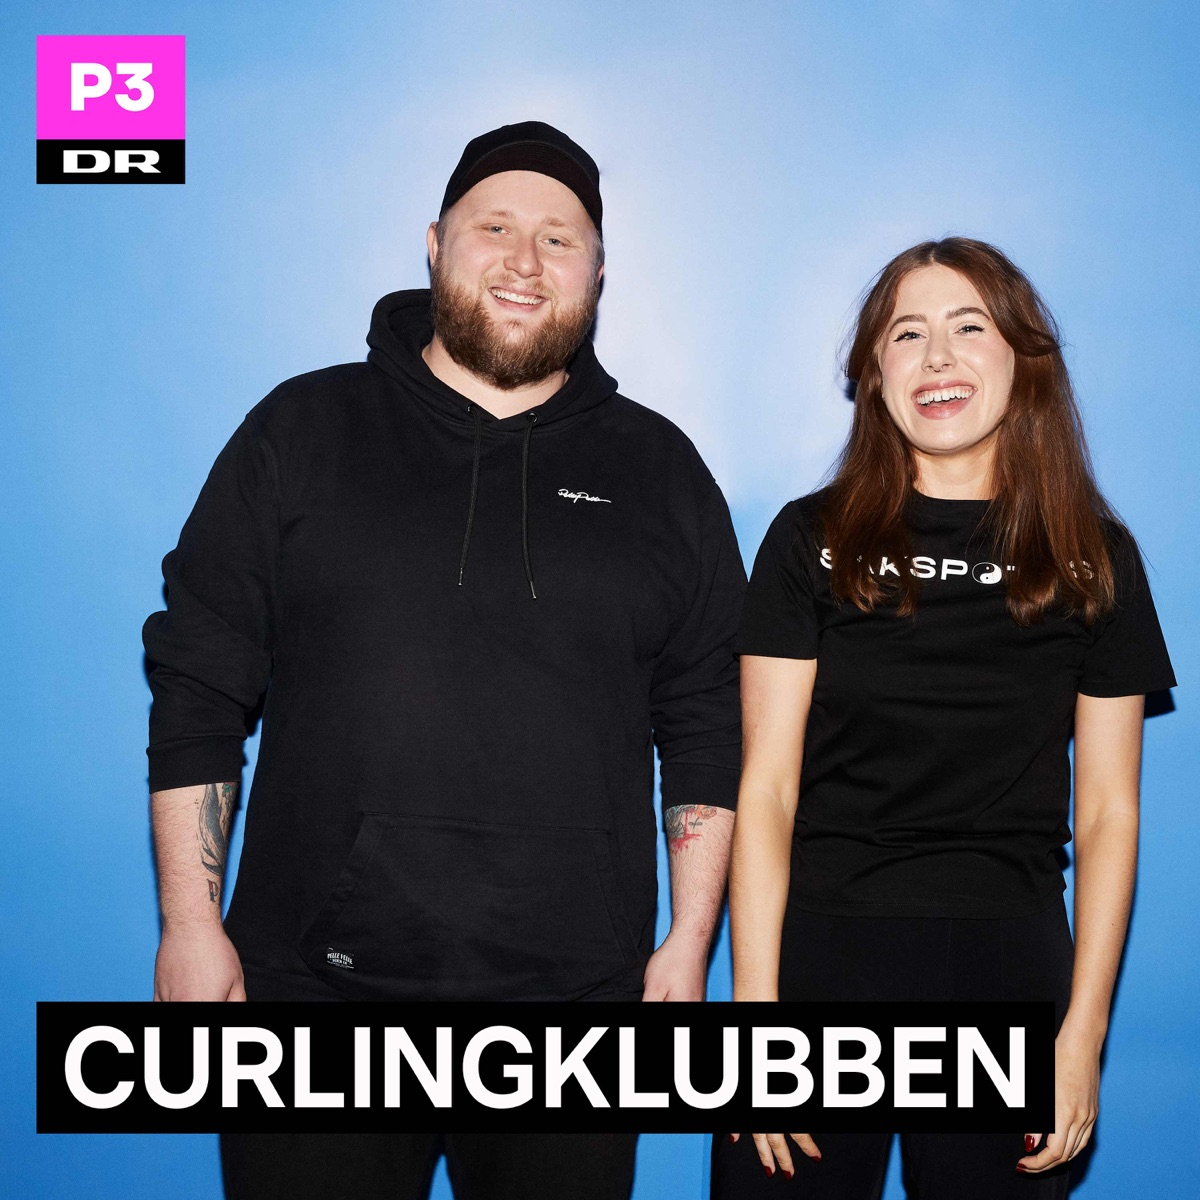 Curlingklubben... Teknisk set - 29. jun 2020